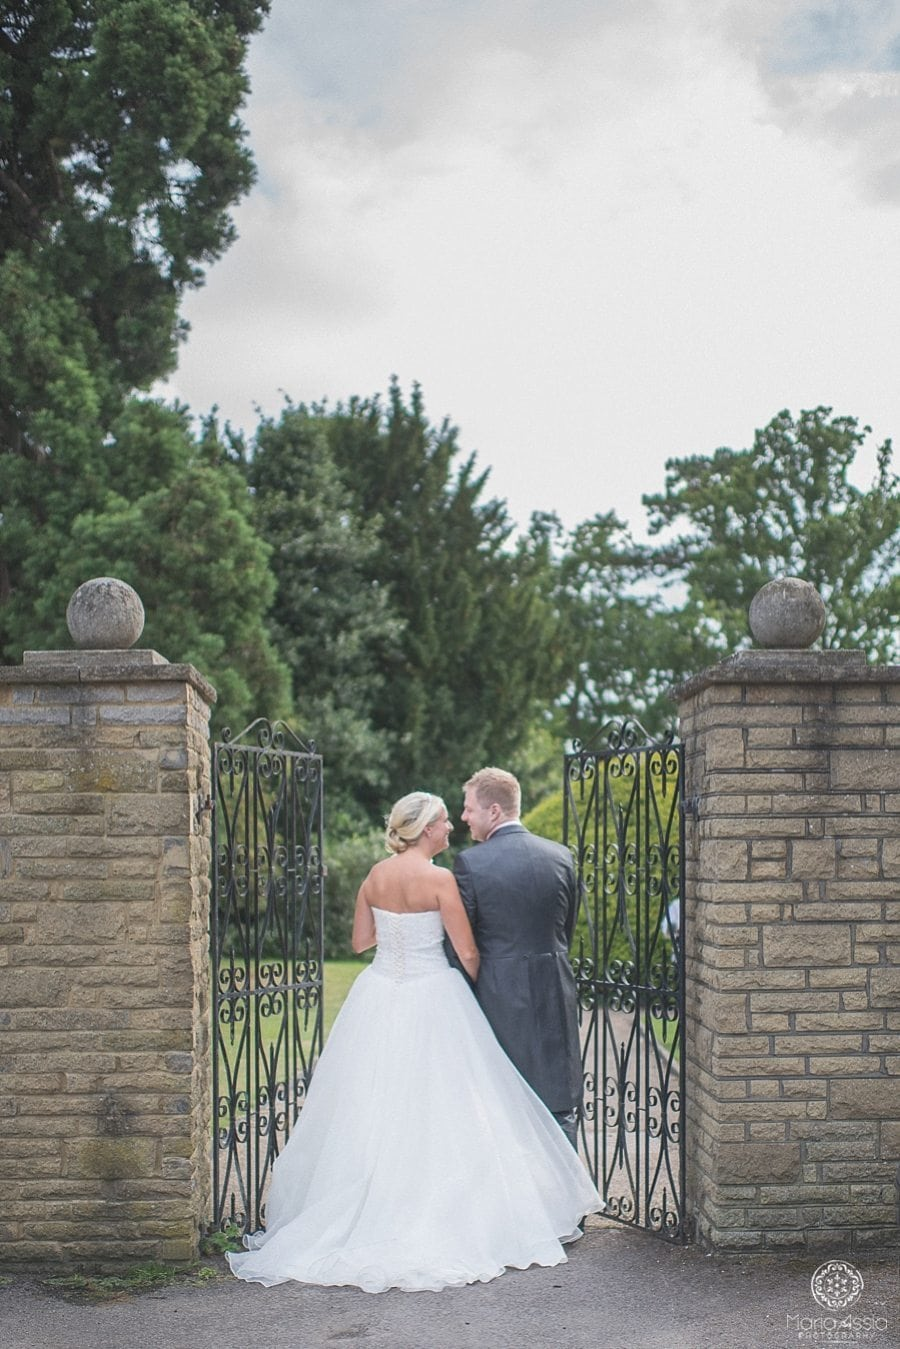 Bride and groom walking through the gate to the grounds at Bickley Manor Hotel in Kent